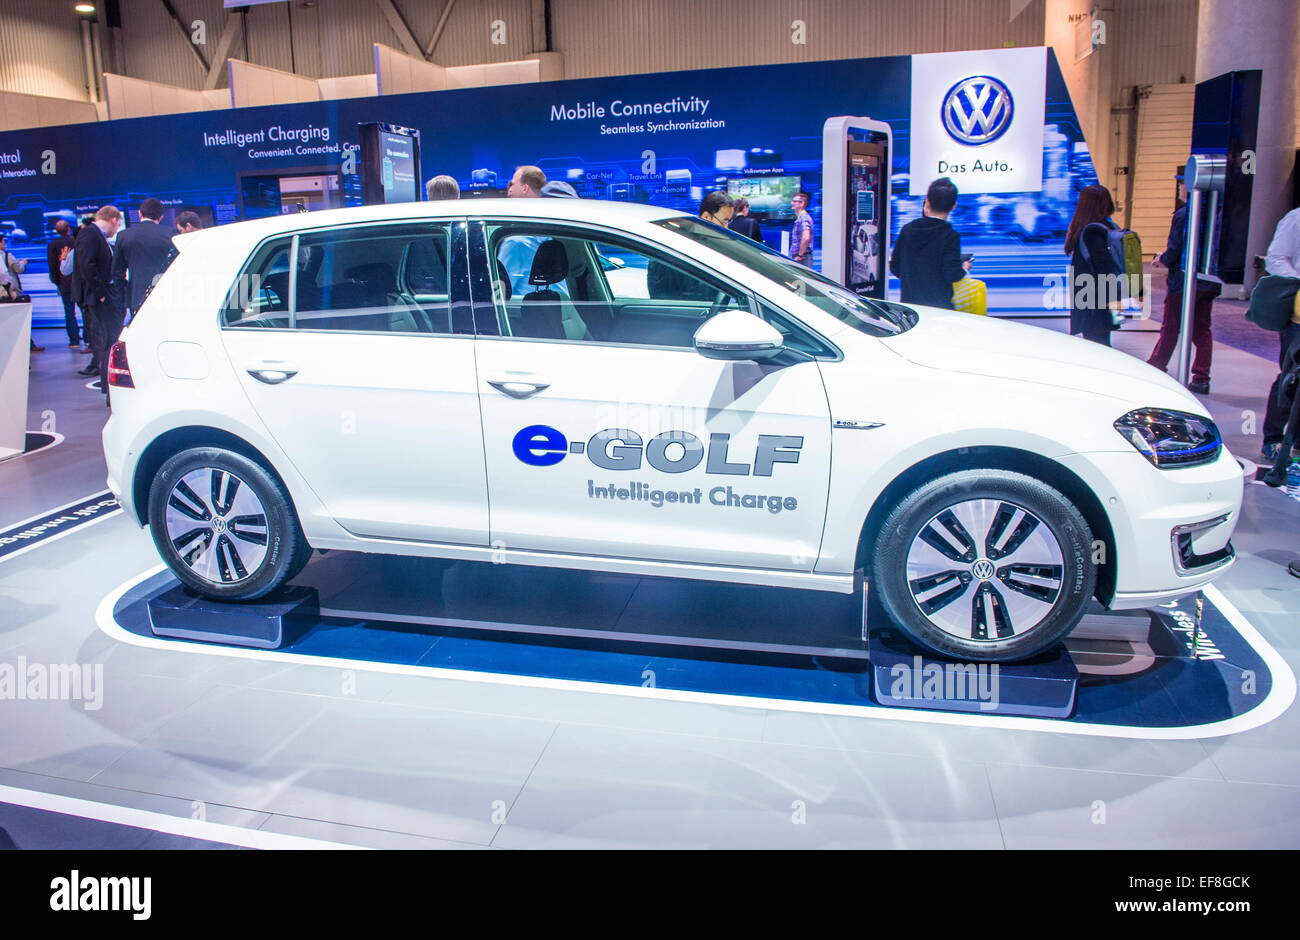 The Volkswagen EGolf Electric Car At The CES Show In Las Vegas - Vw car show las vegas